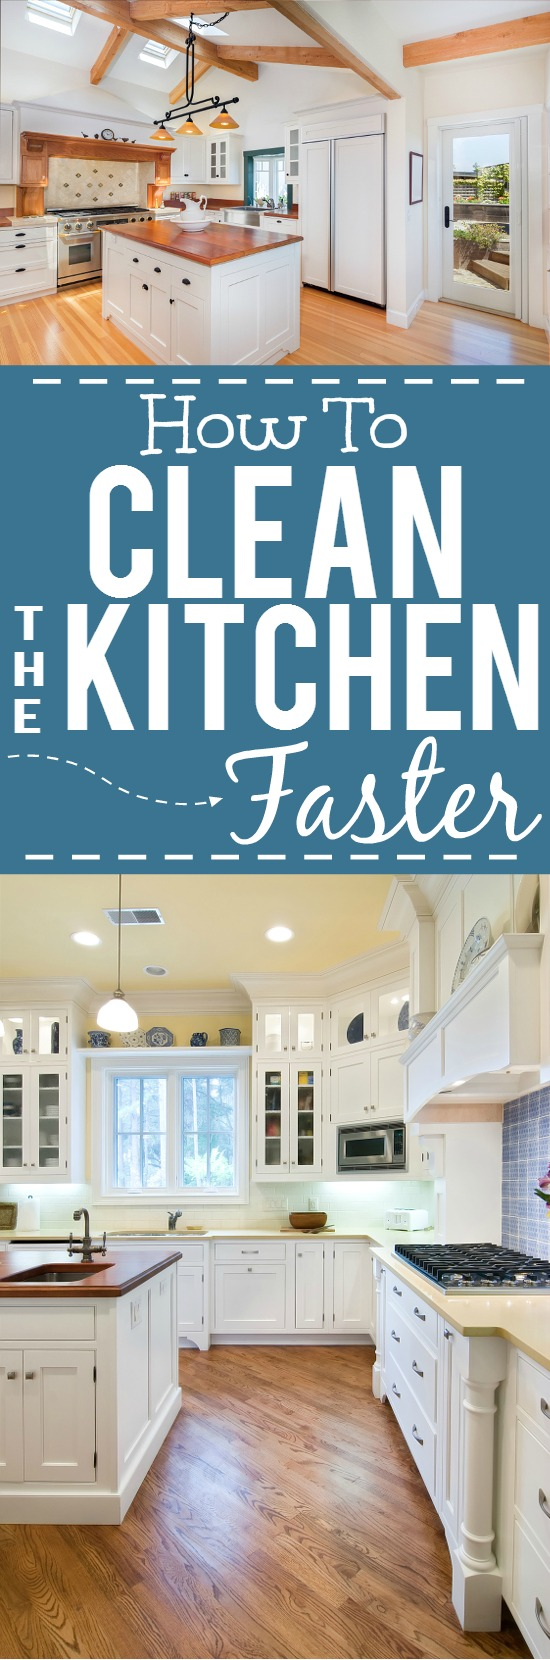 5 Tips to Help Clean Your Kitchen Faster -Whether you're Spring cleaning or just running a busy schedule, use these 5 simple tips to help clean your kitchen faster! Great cleaning tips and tricks for kitchen!